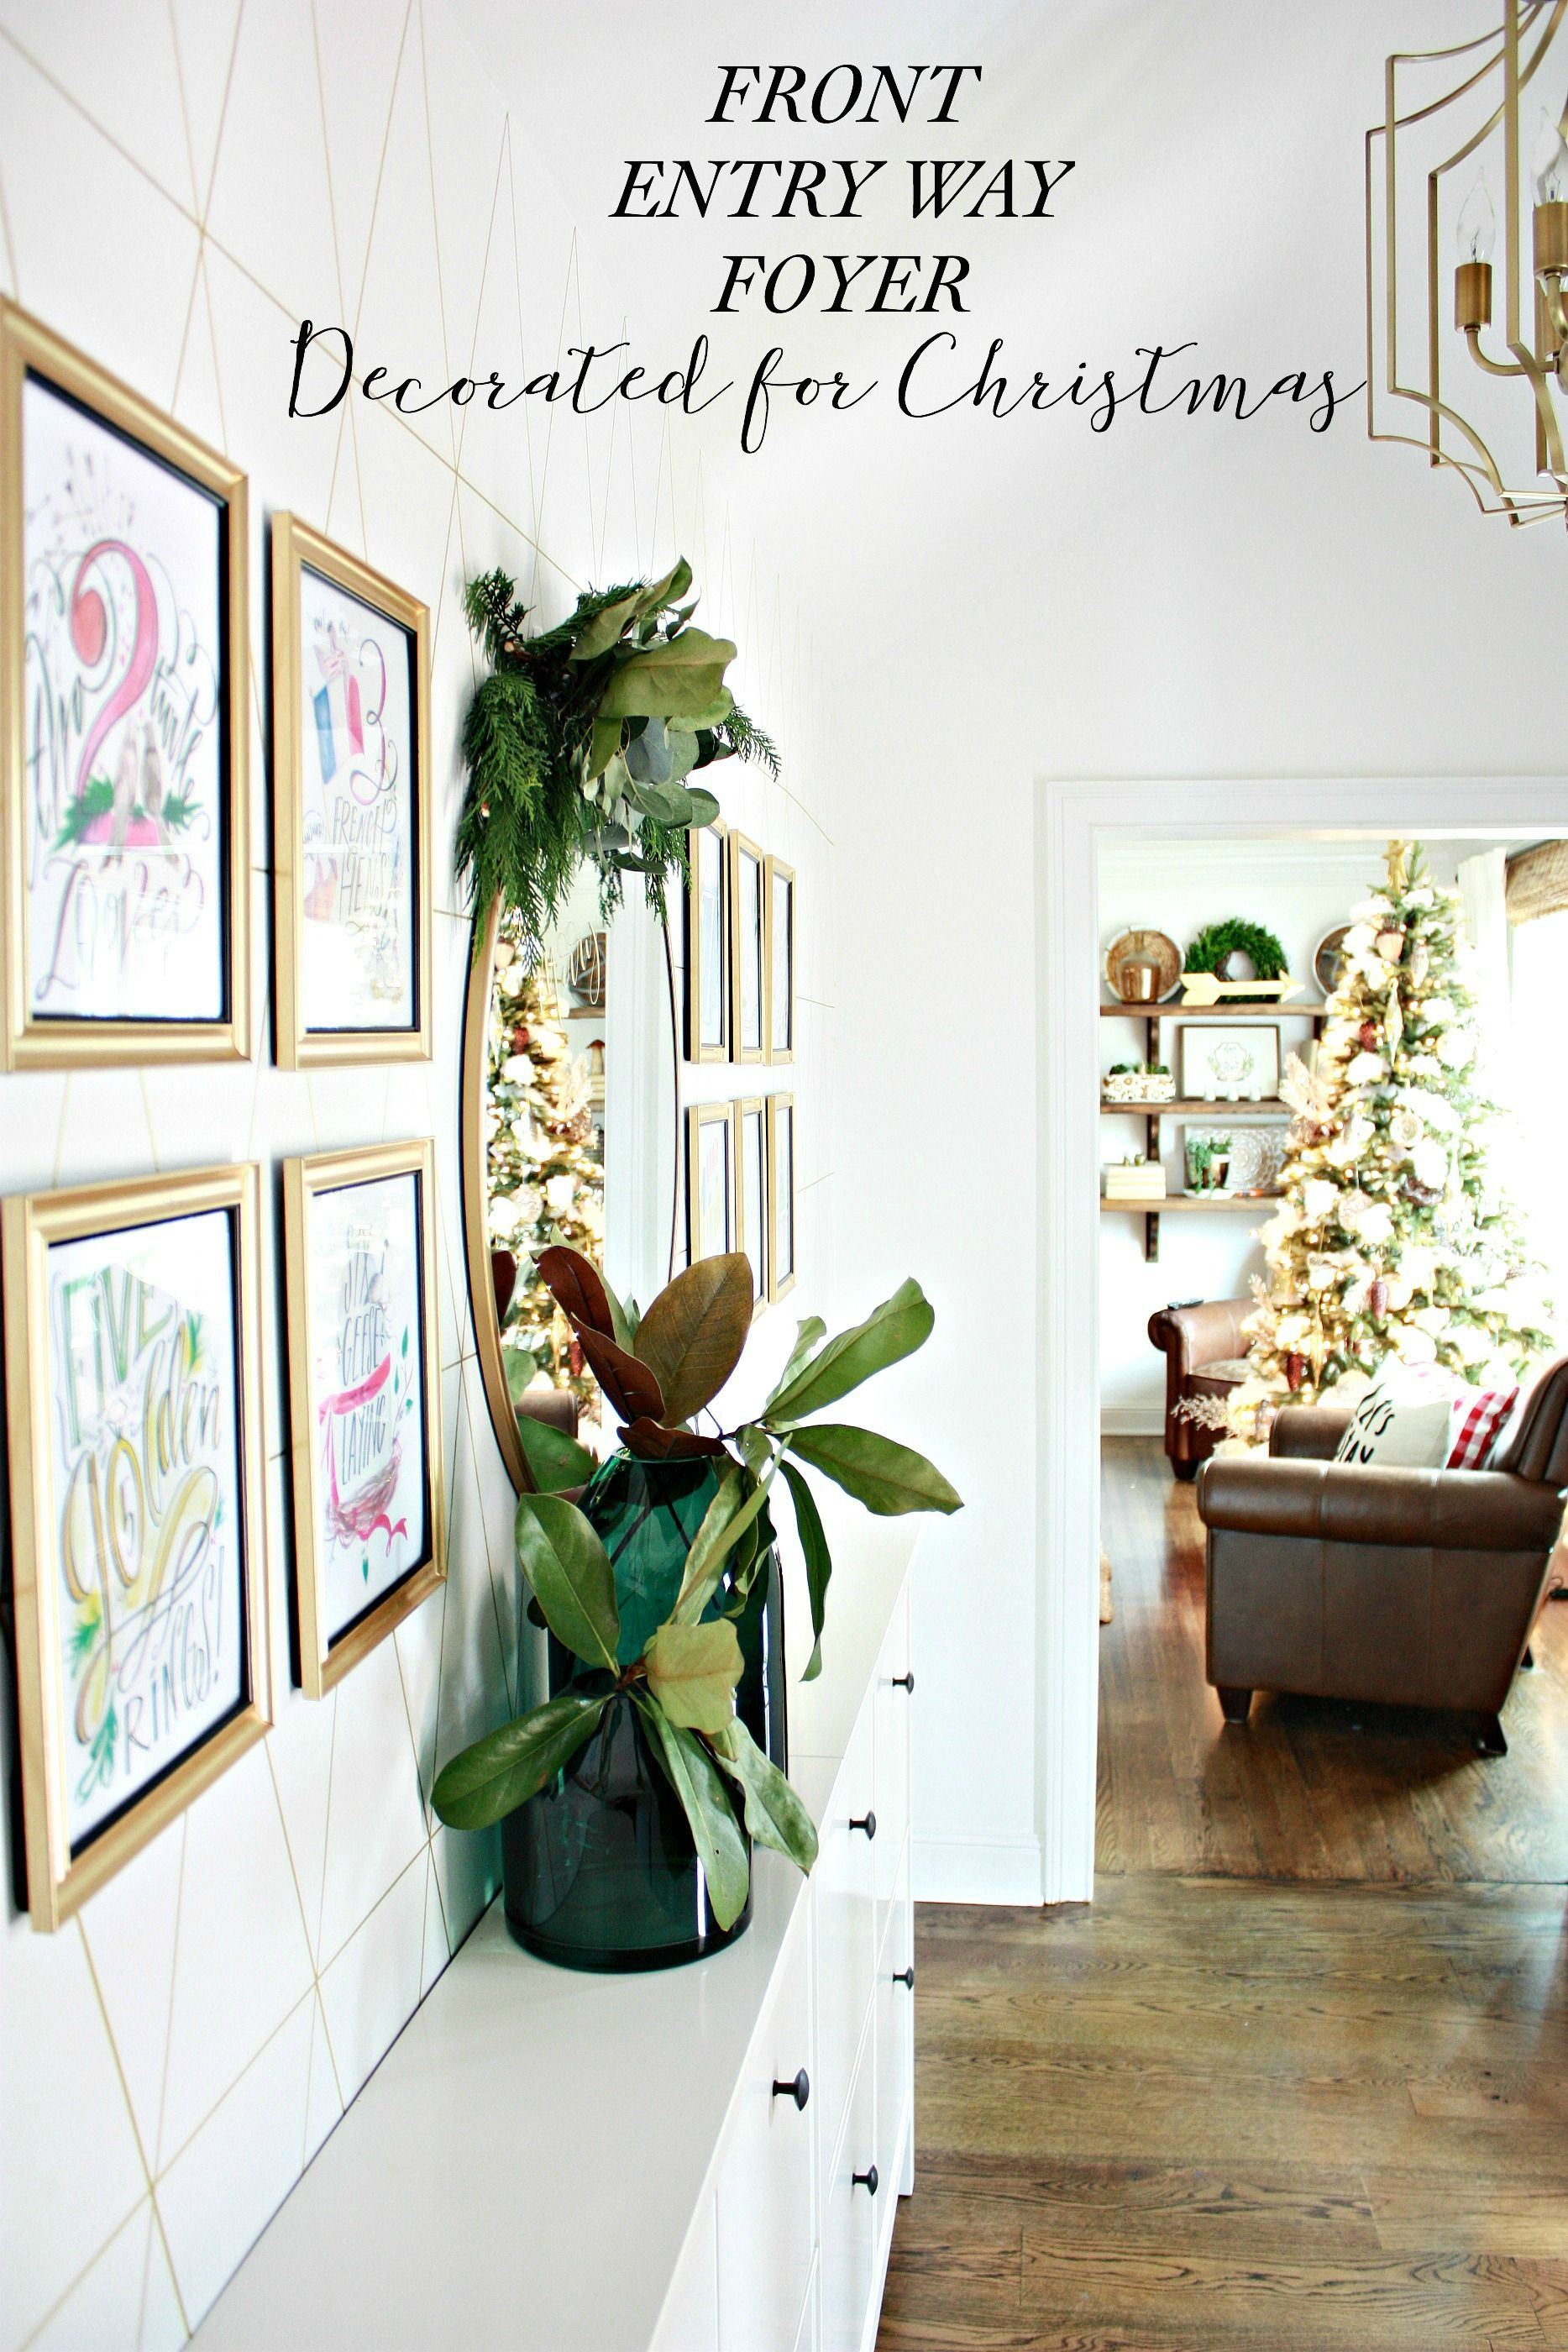 Front Entry Way Foyer Decorated for Christmas